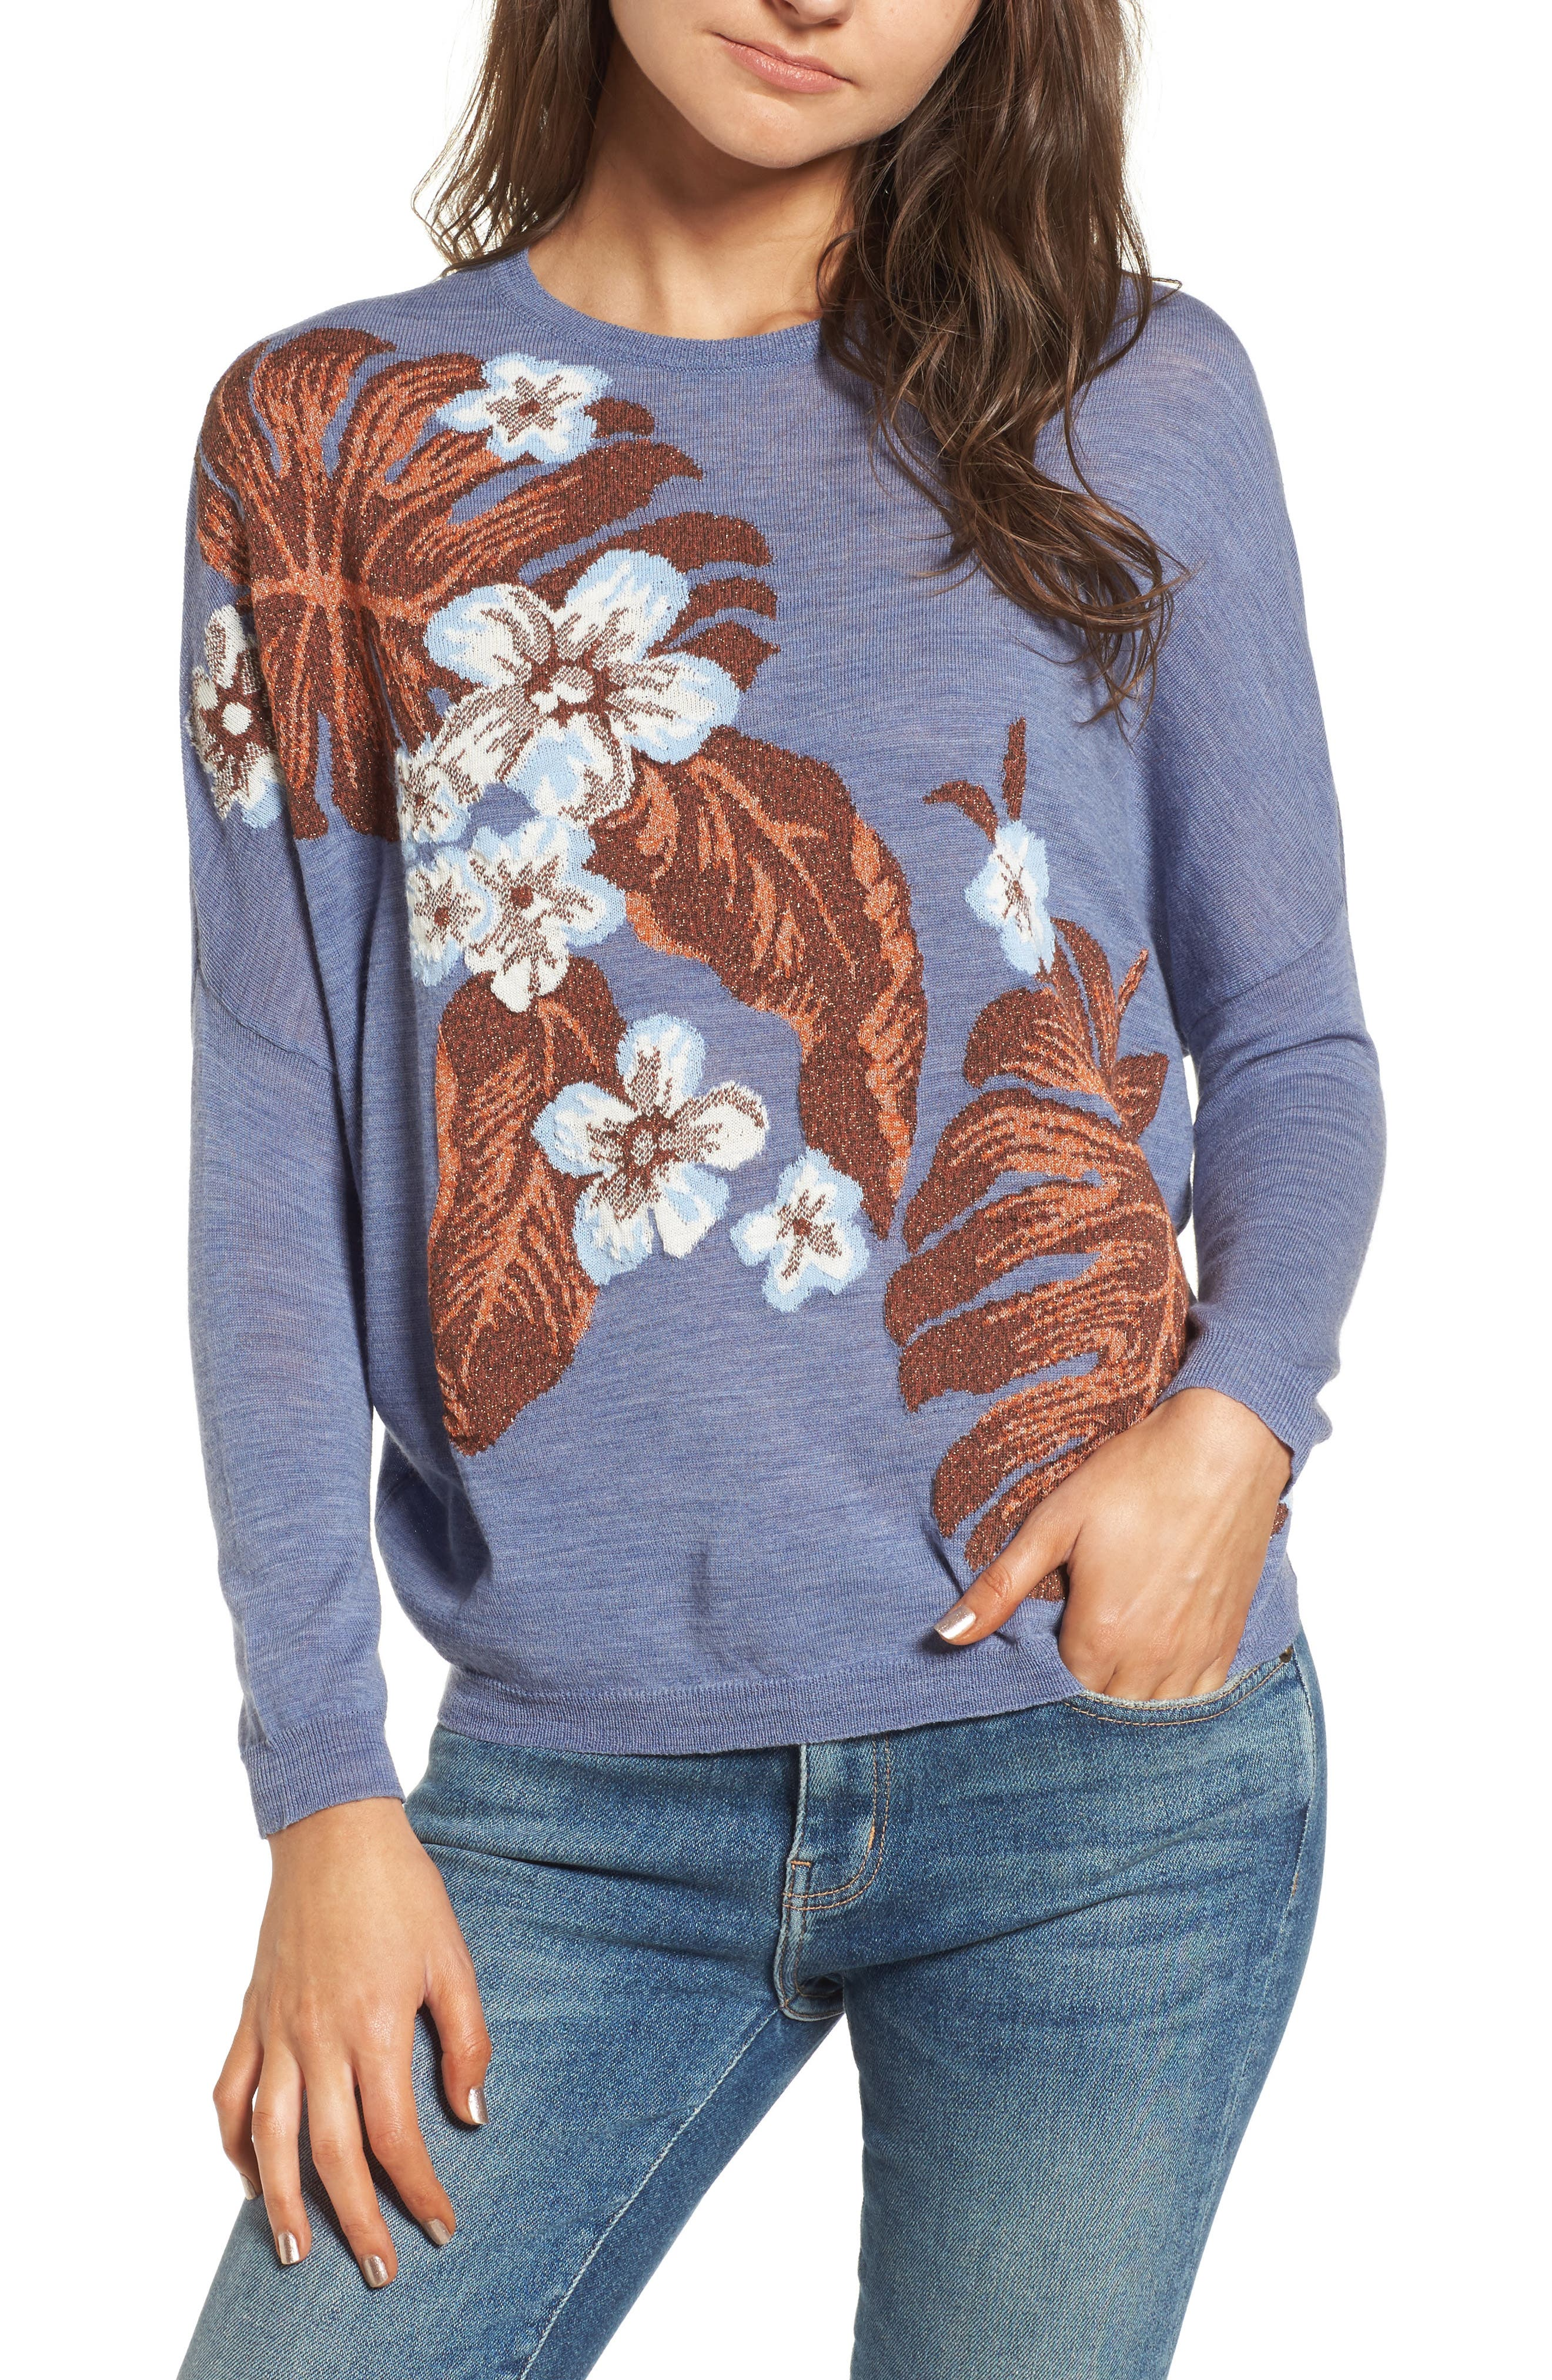 Blupalm Sweater,                         Main,                         color,